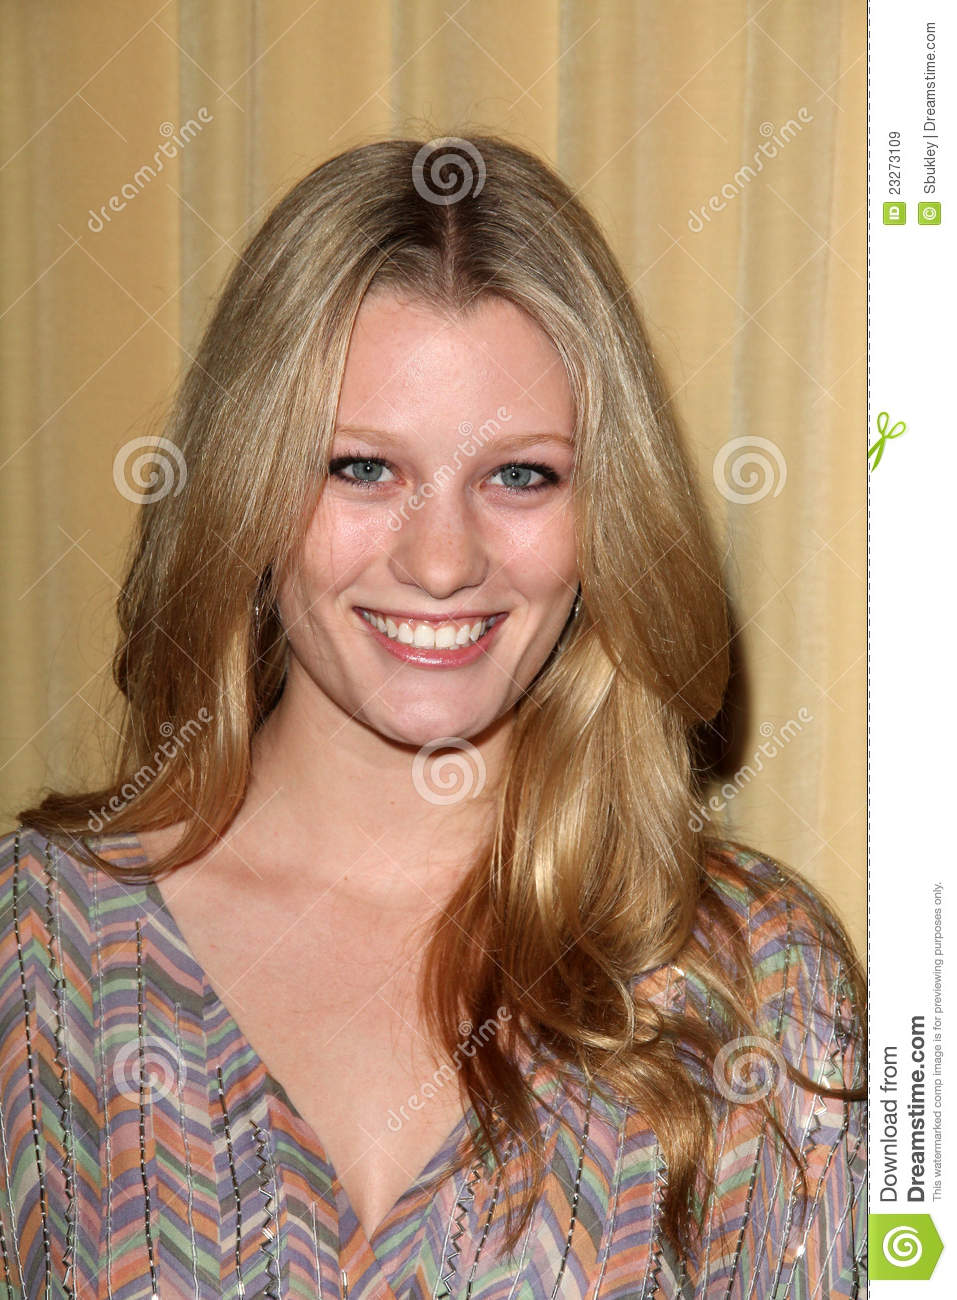 Snapchat Ashley Hinshaw nudes (21 photo), Sexy, Is a cute, Feet, cleavage 2019